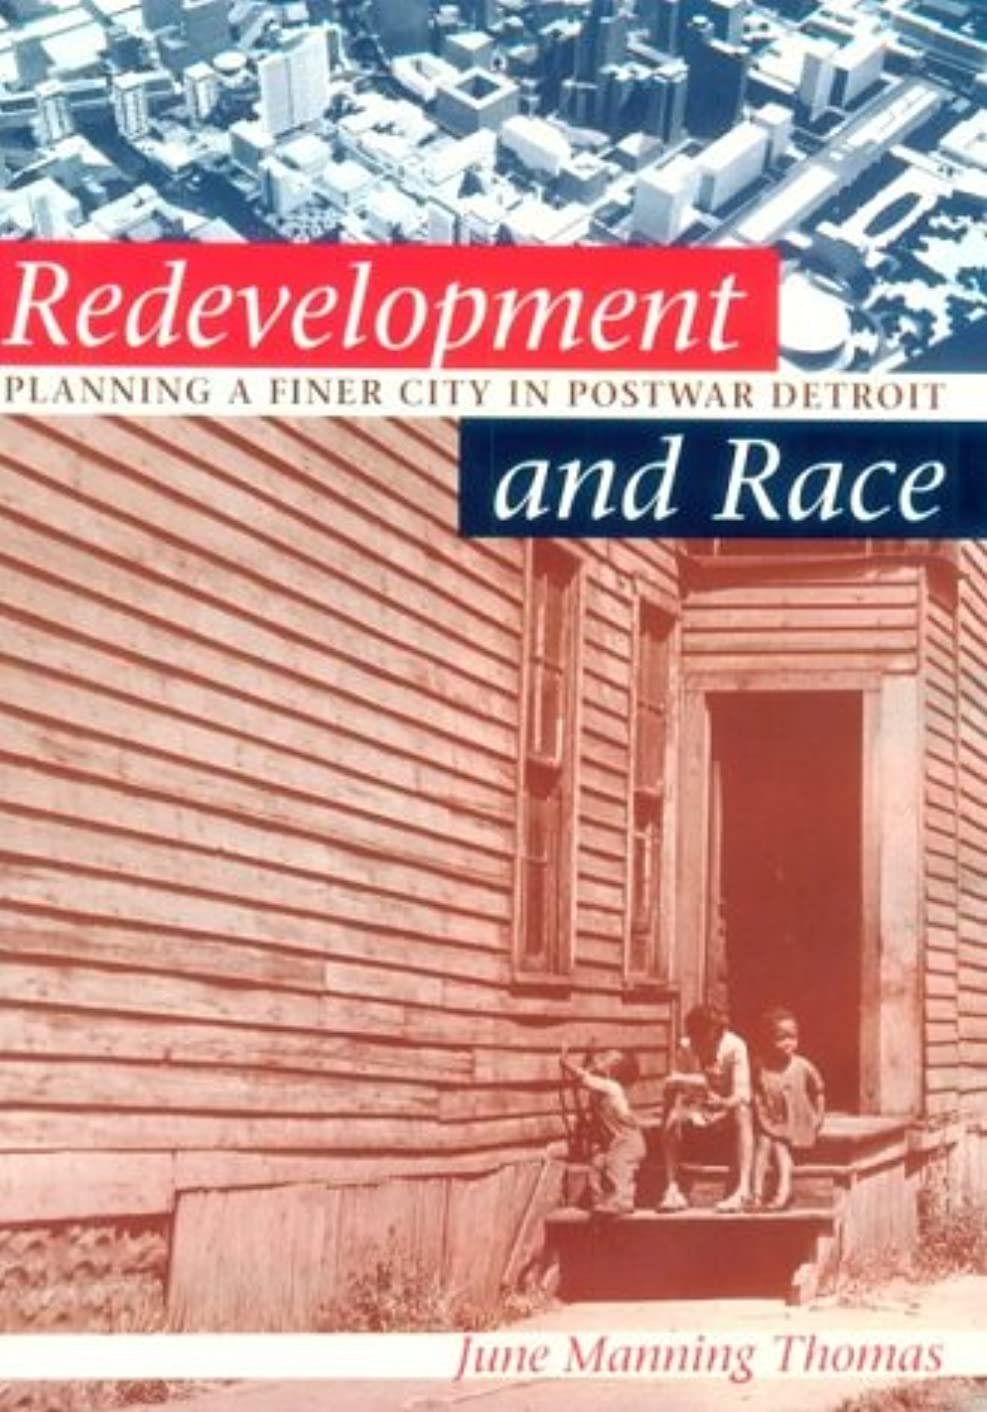 Redevelopment and Race: Planning a Finer City in Postwar Detroit (Michigan) (Creating the North American Landscape)